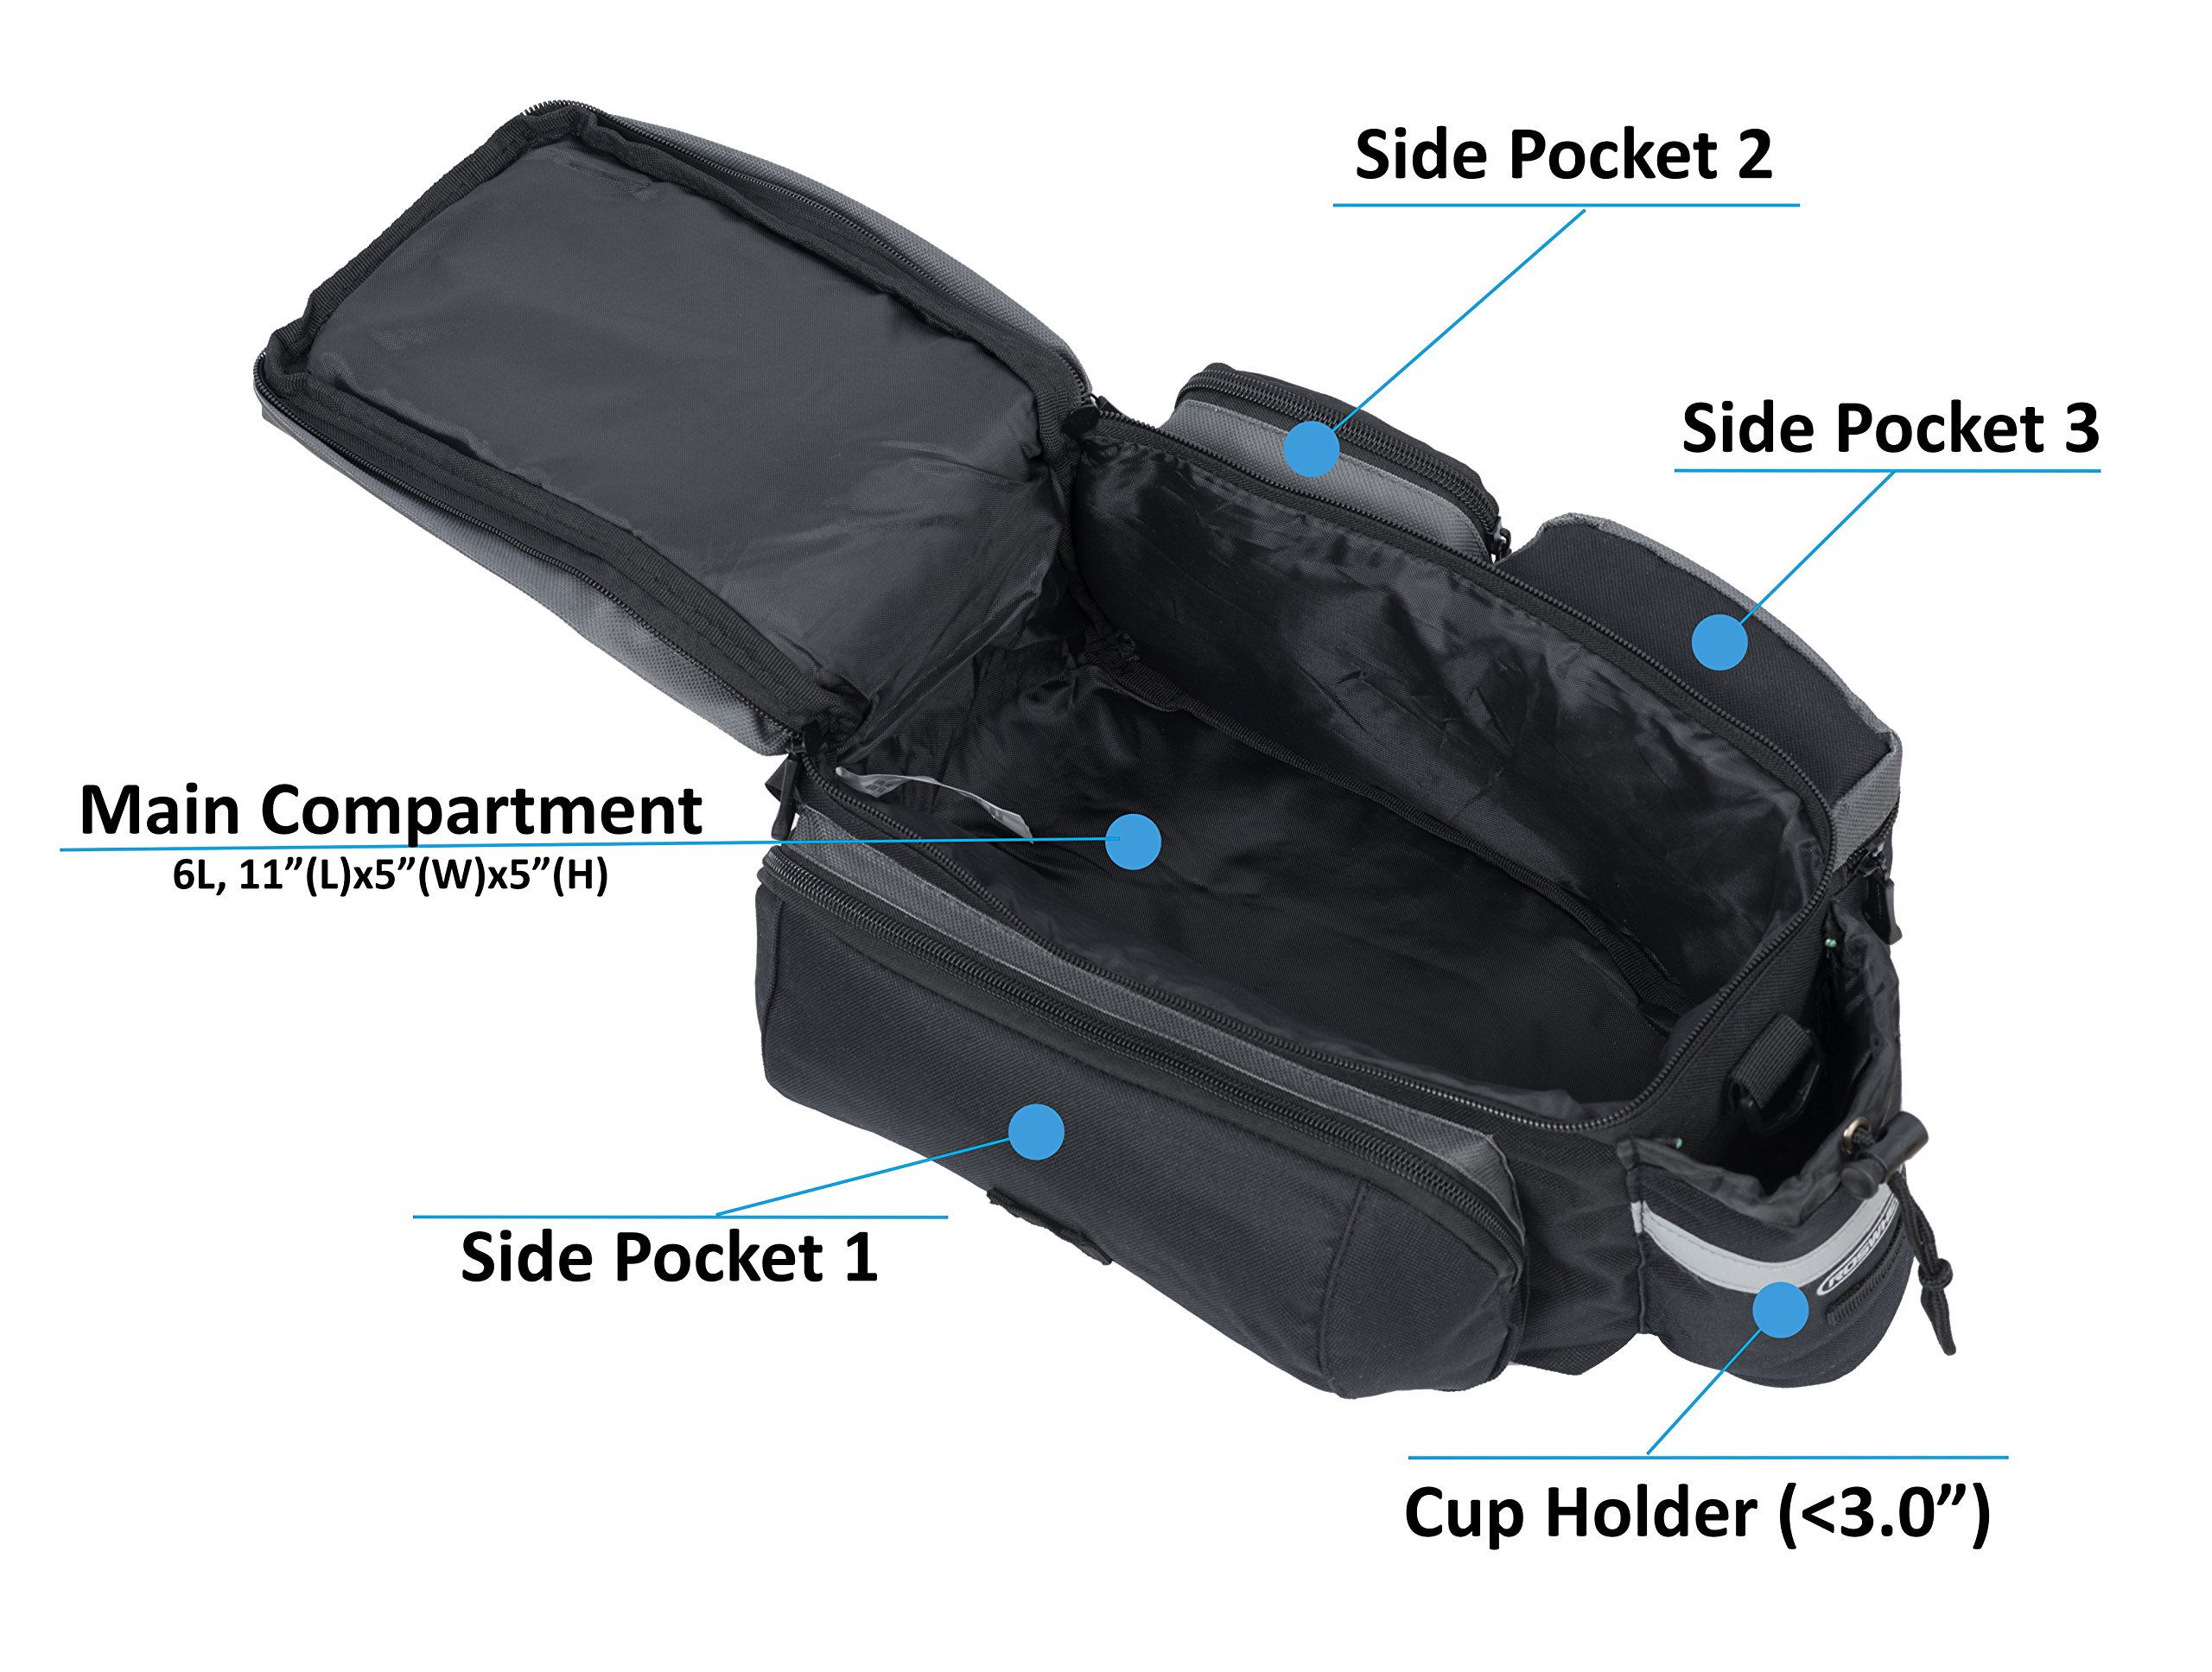 Roswheel 14024 Convertible Bike Bicycle Rear Rack Seat Pannier Trunk Bag with Cup Holder by Roswheel (Image #5)